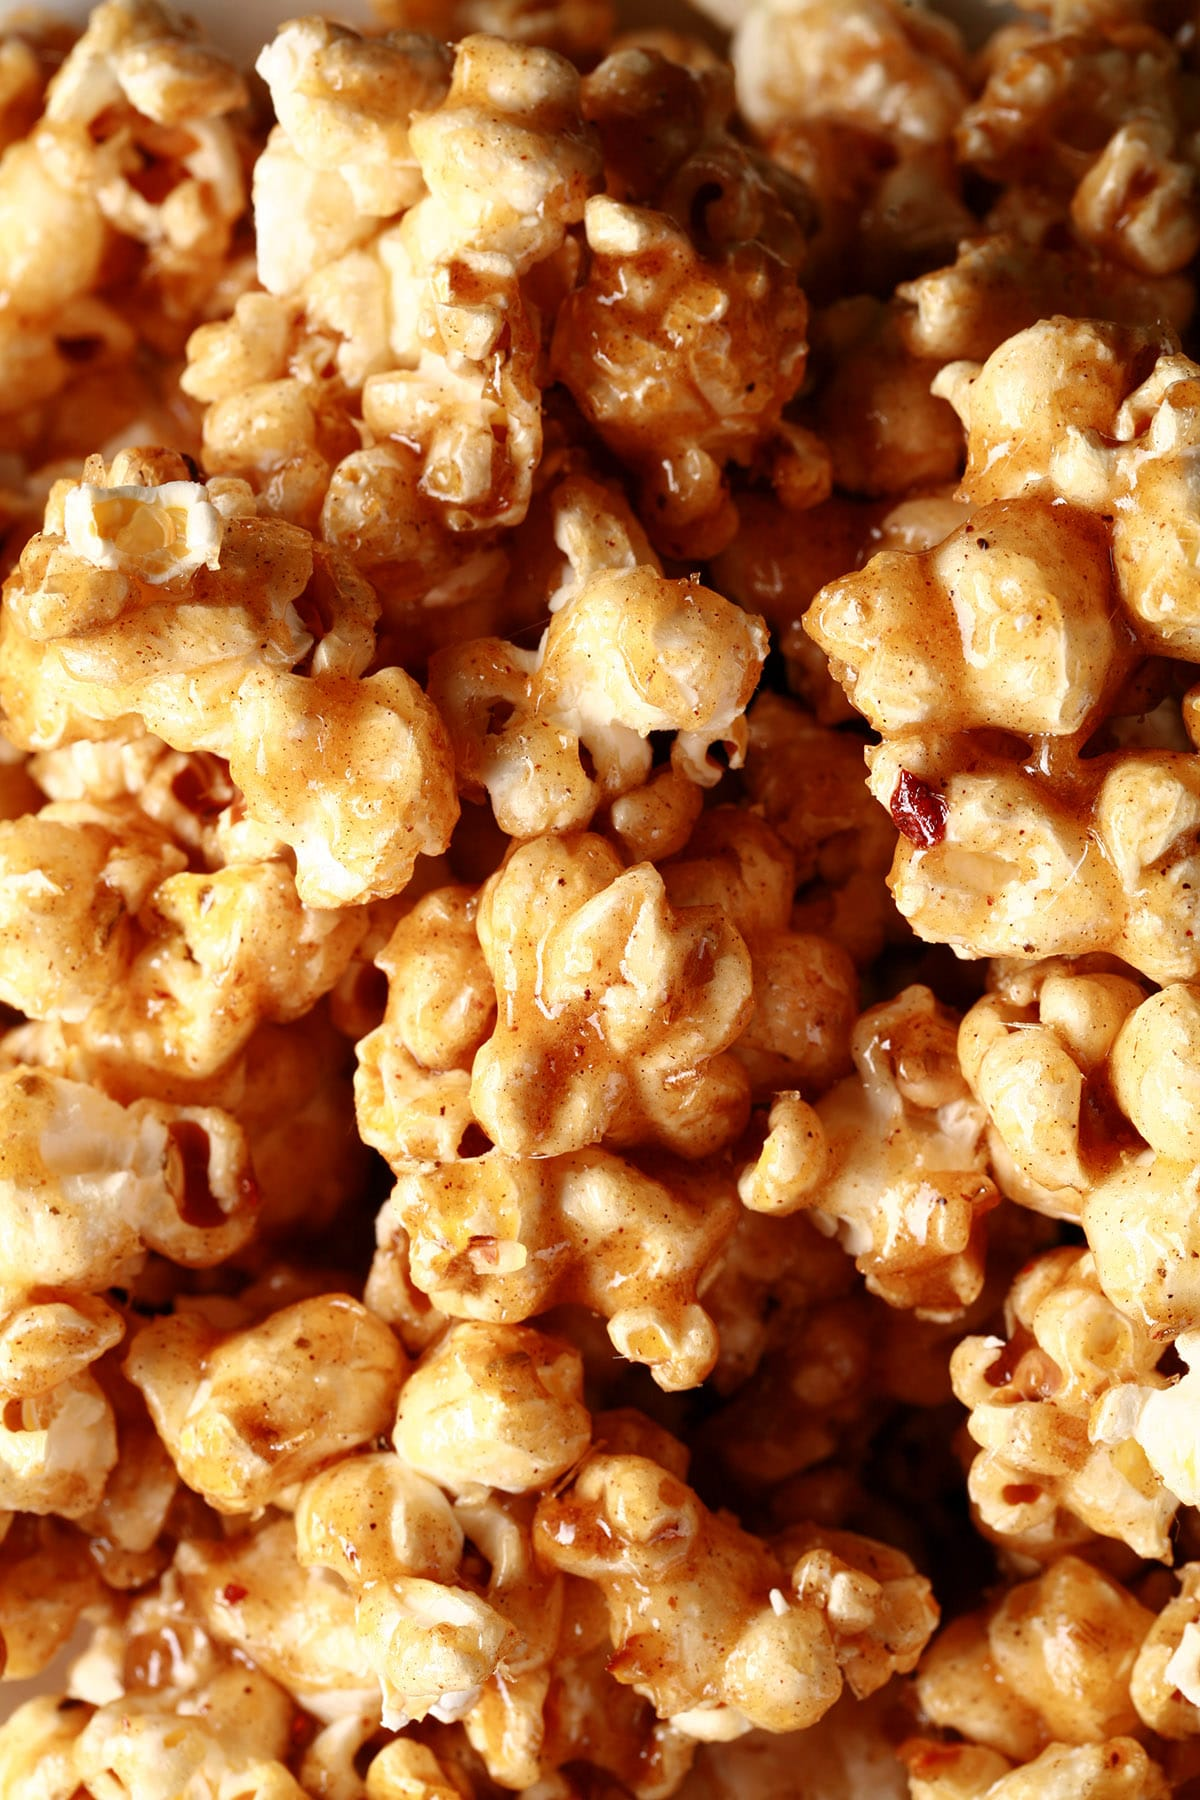 Close up view of a bowl of Moroccan Twist Salted Caramel Popcorn.